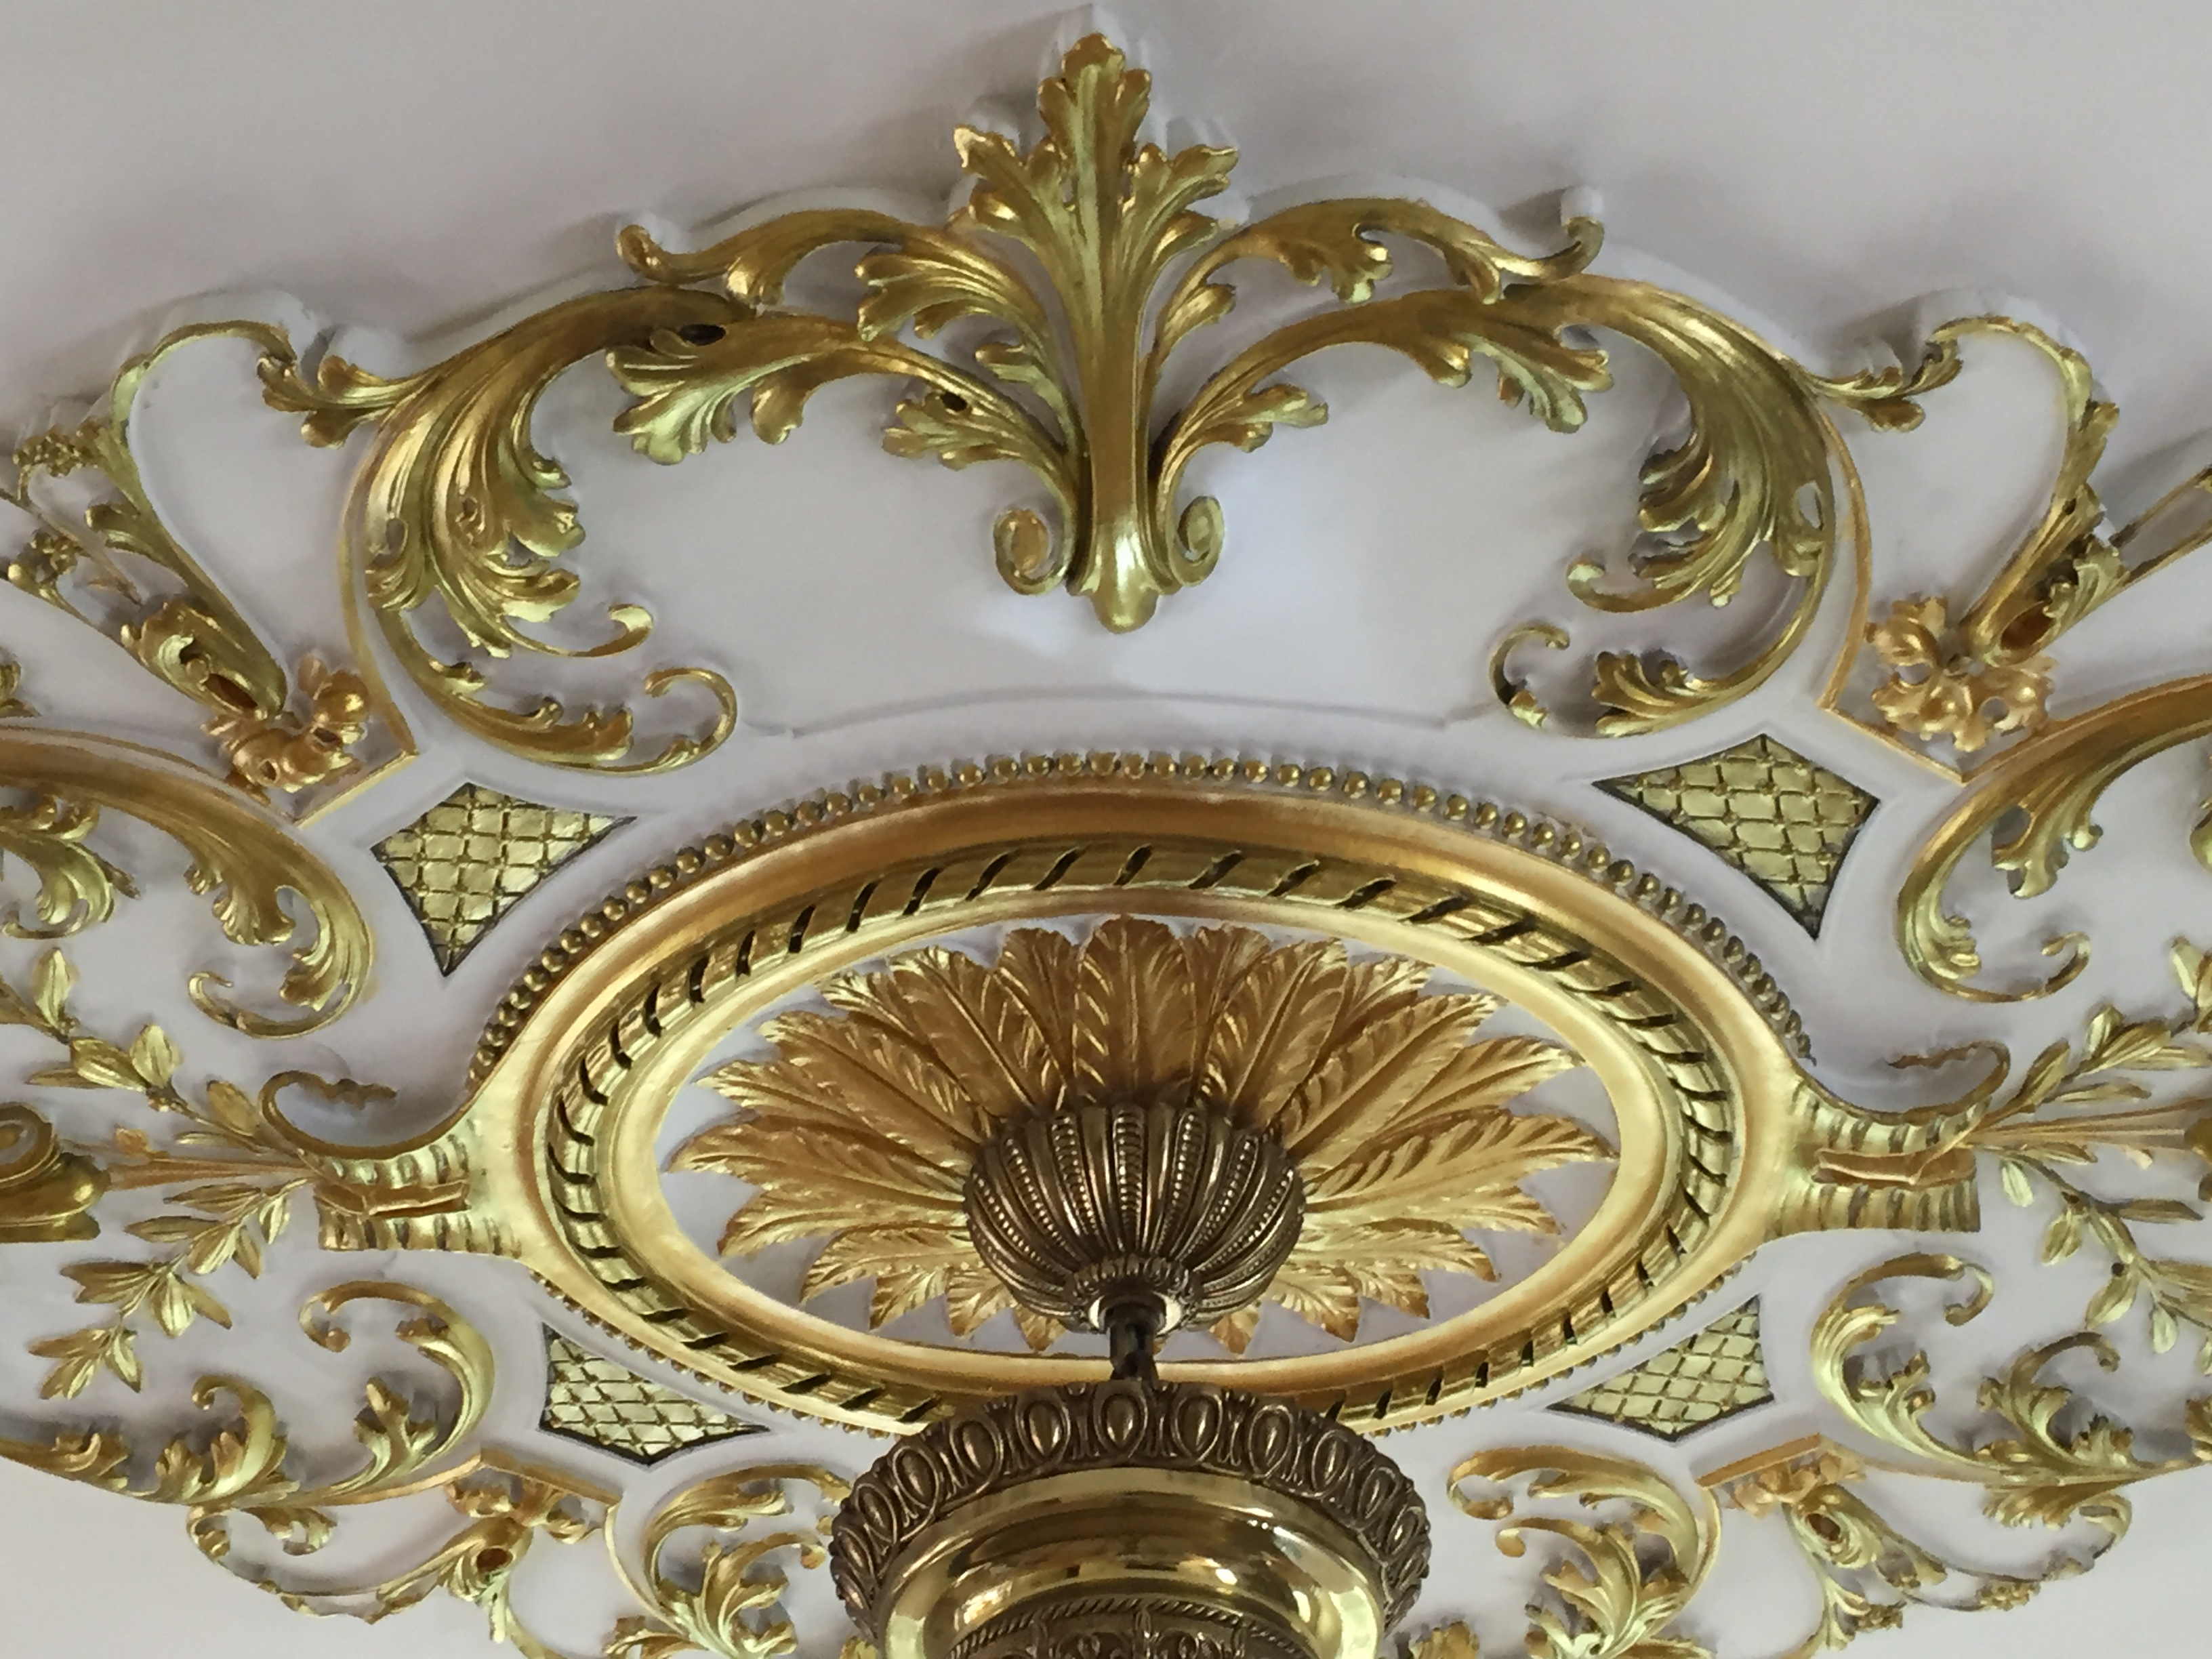 Decorative Medallion Tenafly NJ